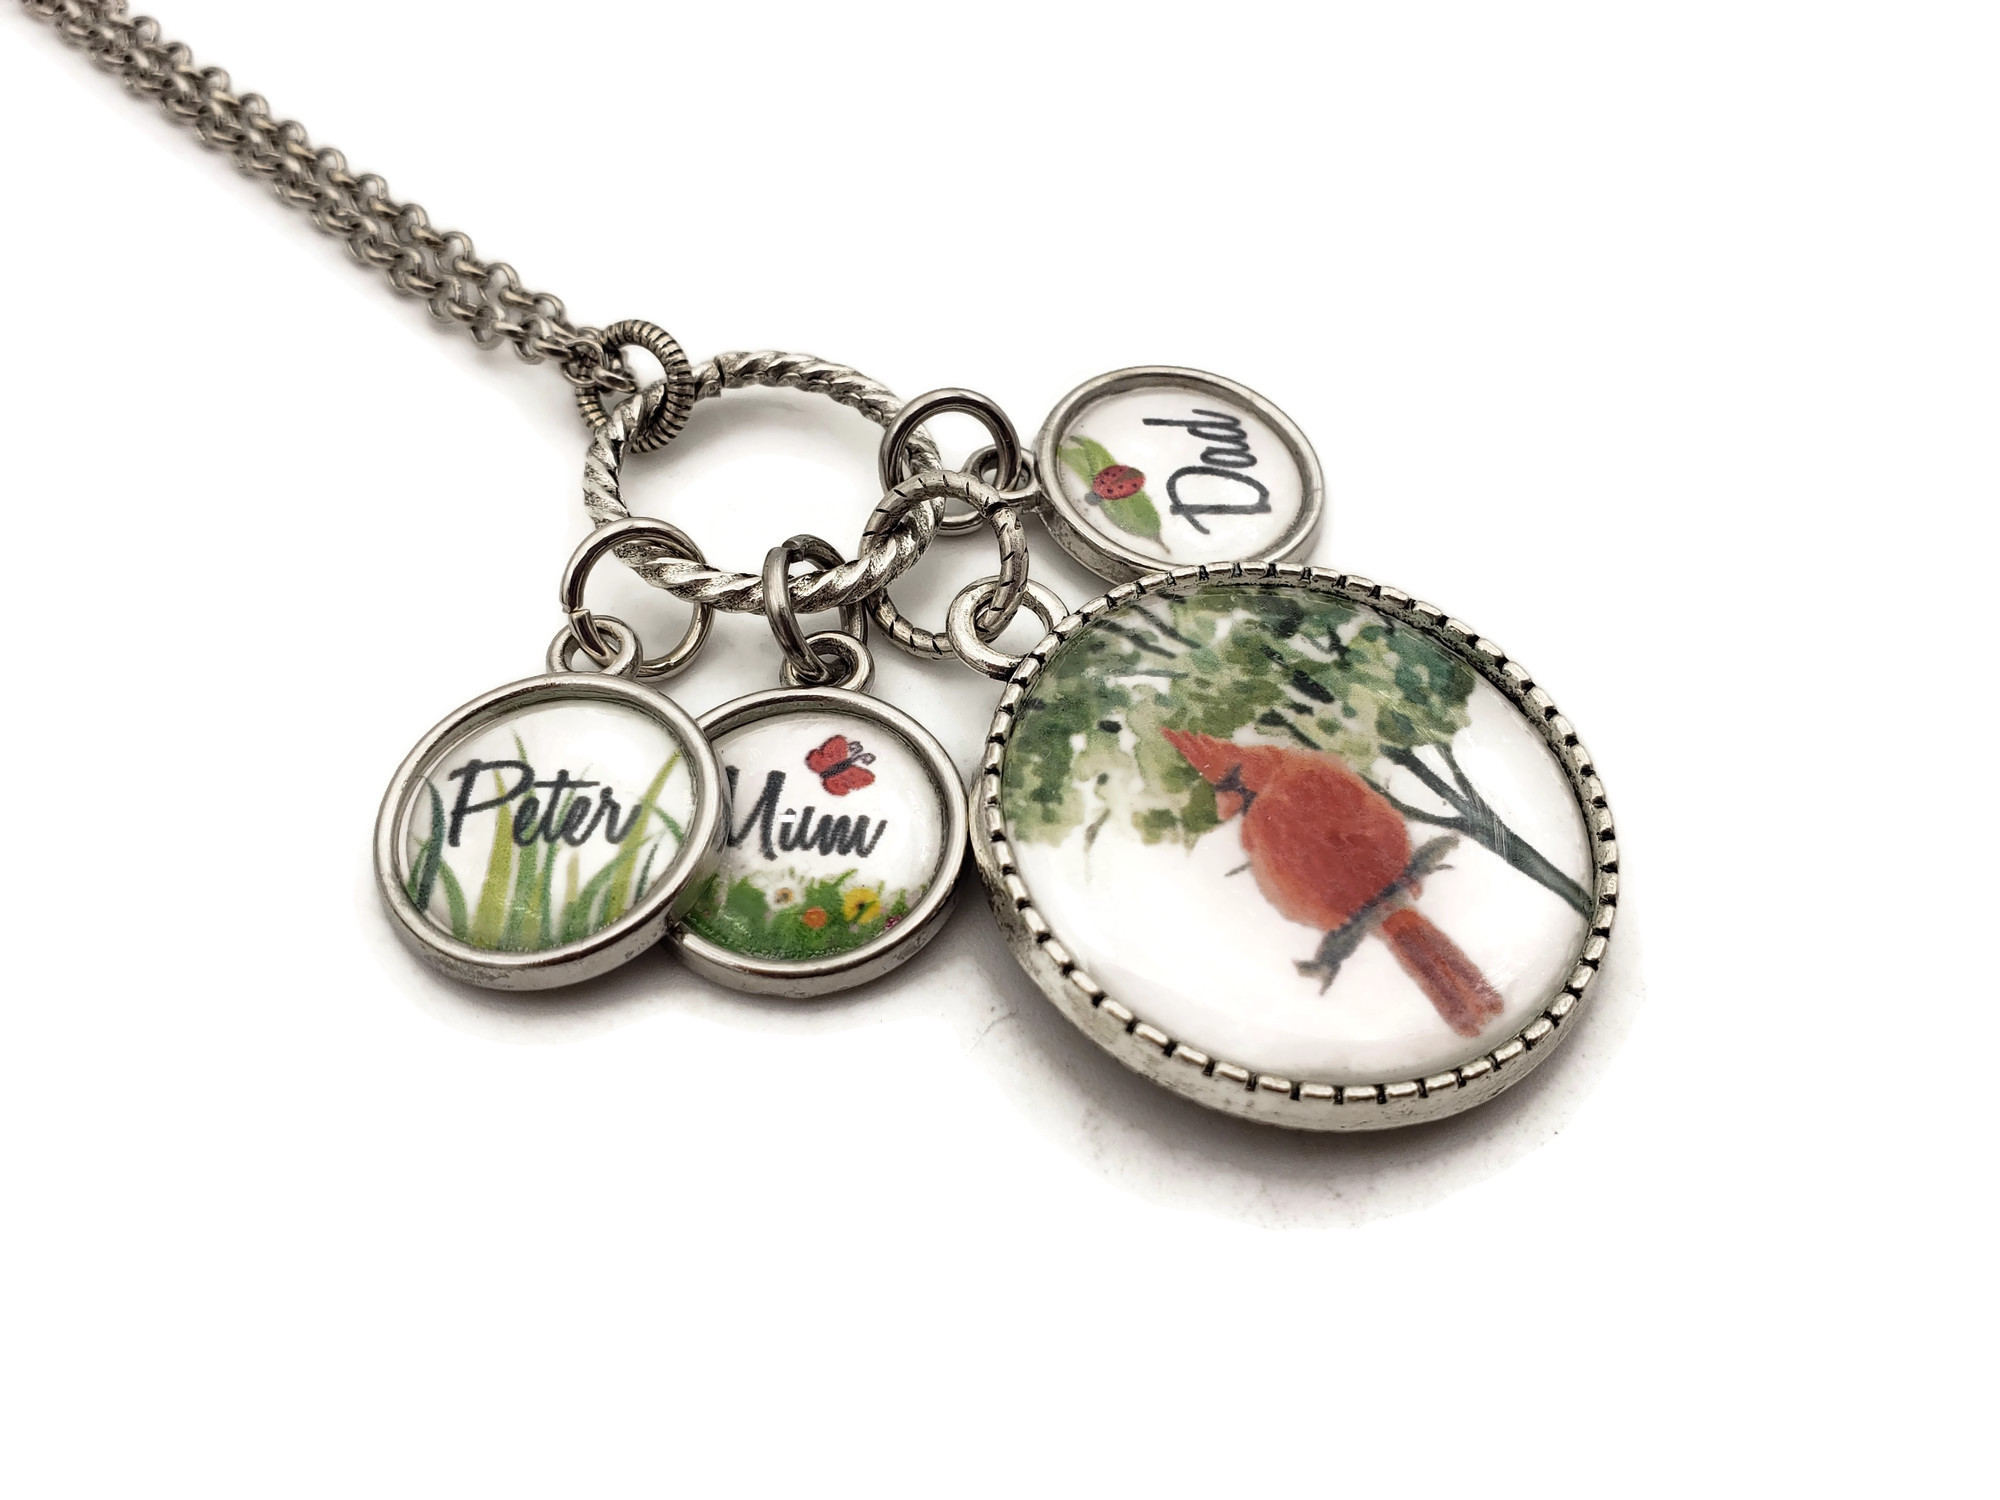 Cardinal Gifts - When a Cardinal Appears - Cardinal Memorial Necklace